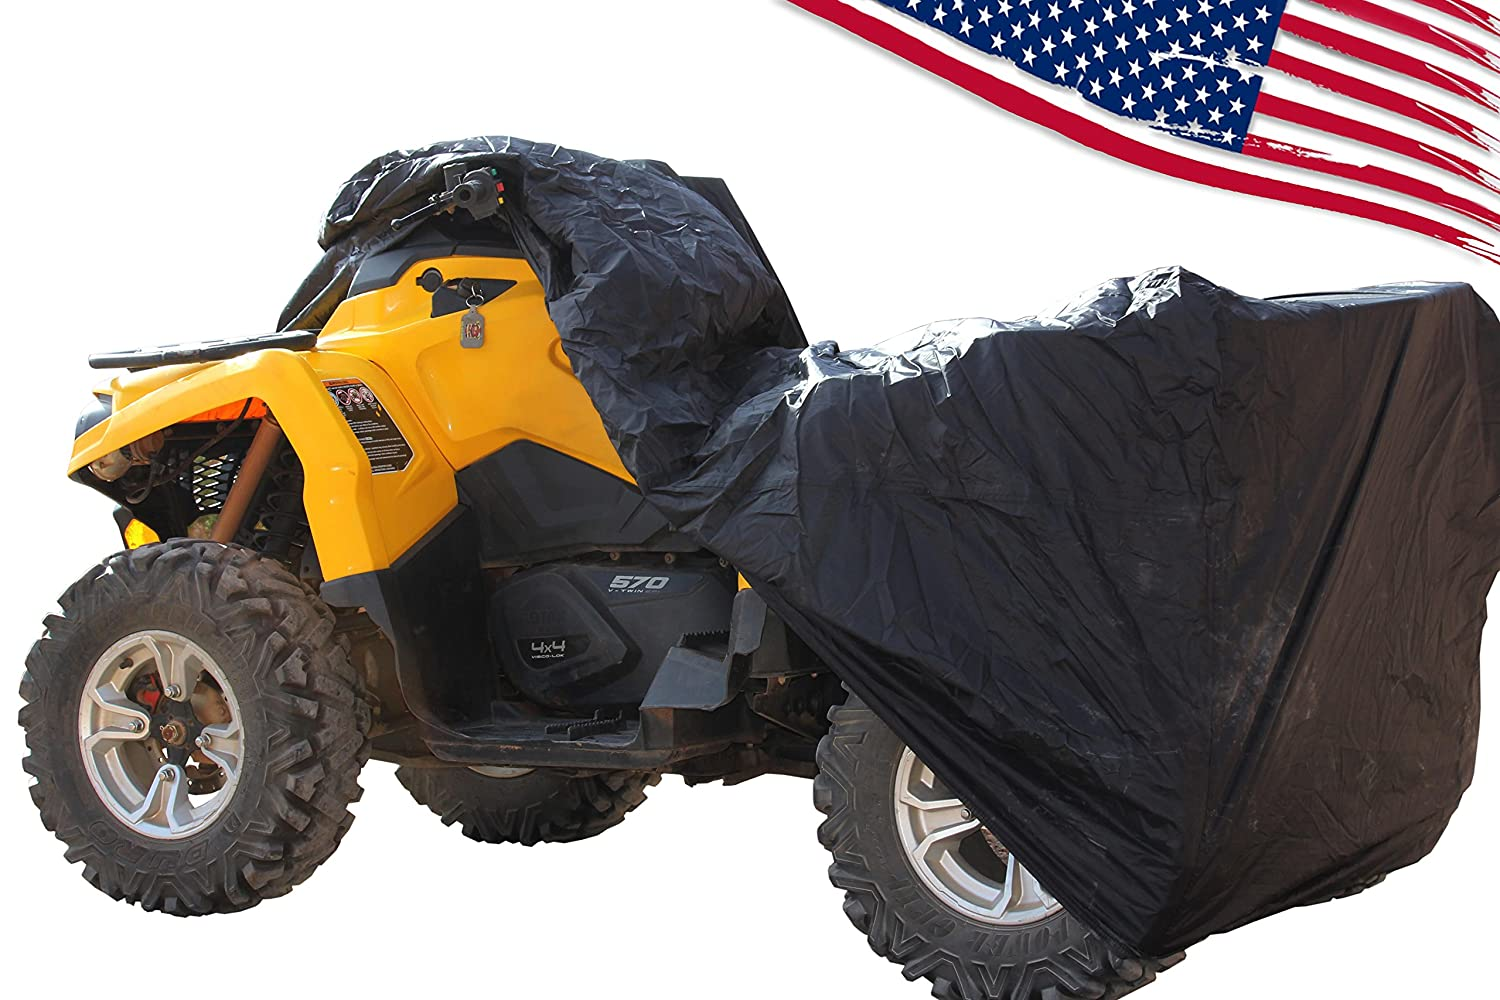 Rhino 4 wheeler ATV Cover - WATERPROOF, WINDPROOF 190T TAPED seams with WIND STRAPS. See list of Quads for sizing in description. Works as LAWNMOWER cover, too. Size LARGE Be Legend 4350347228